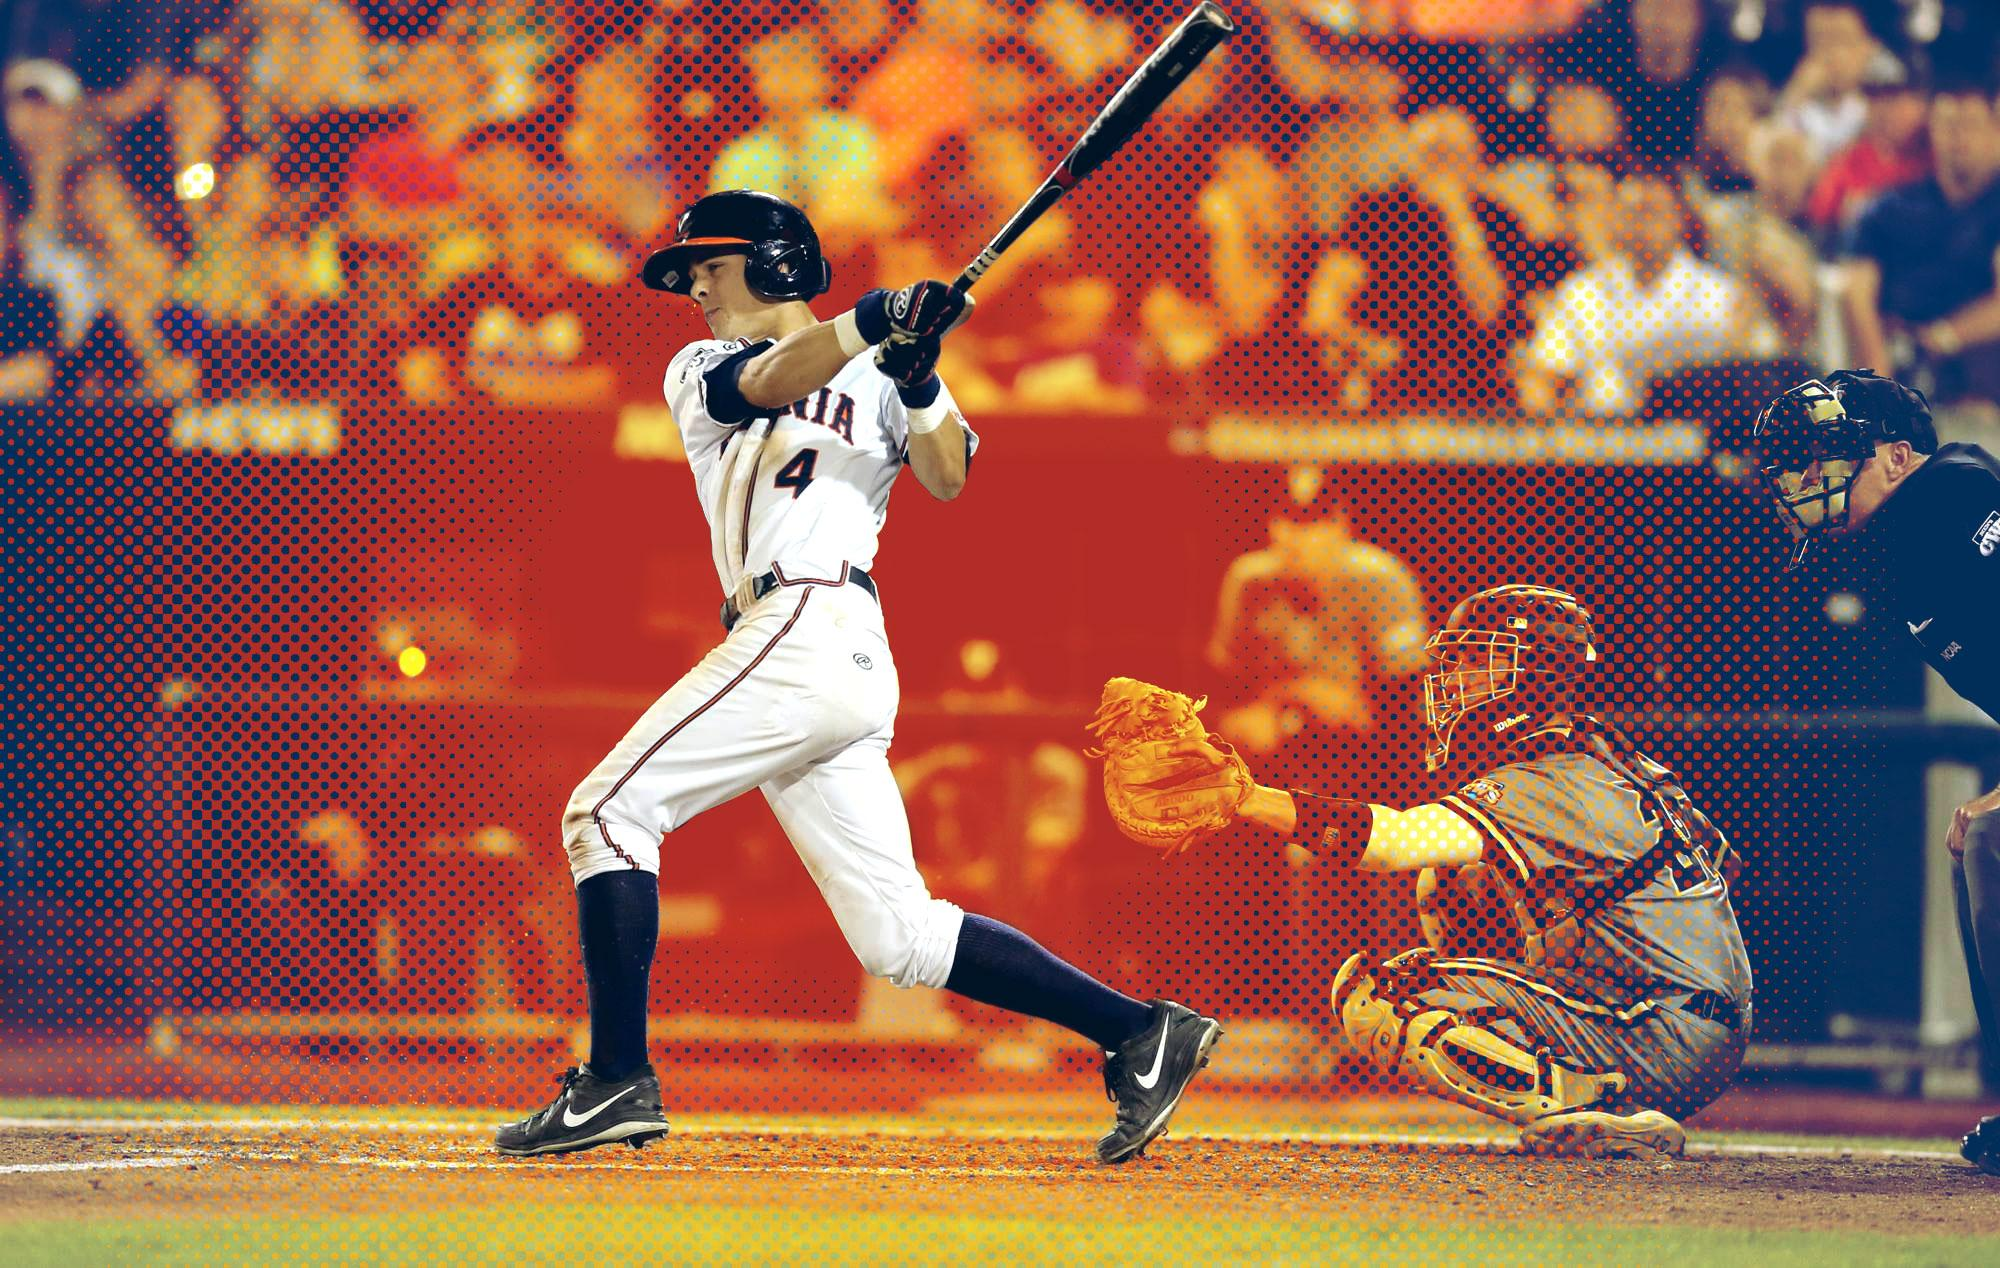 After winning it all last season, UVA embarks on the road to Omaha and the College World Series this weekend.